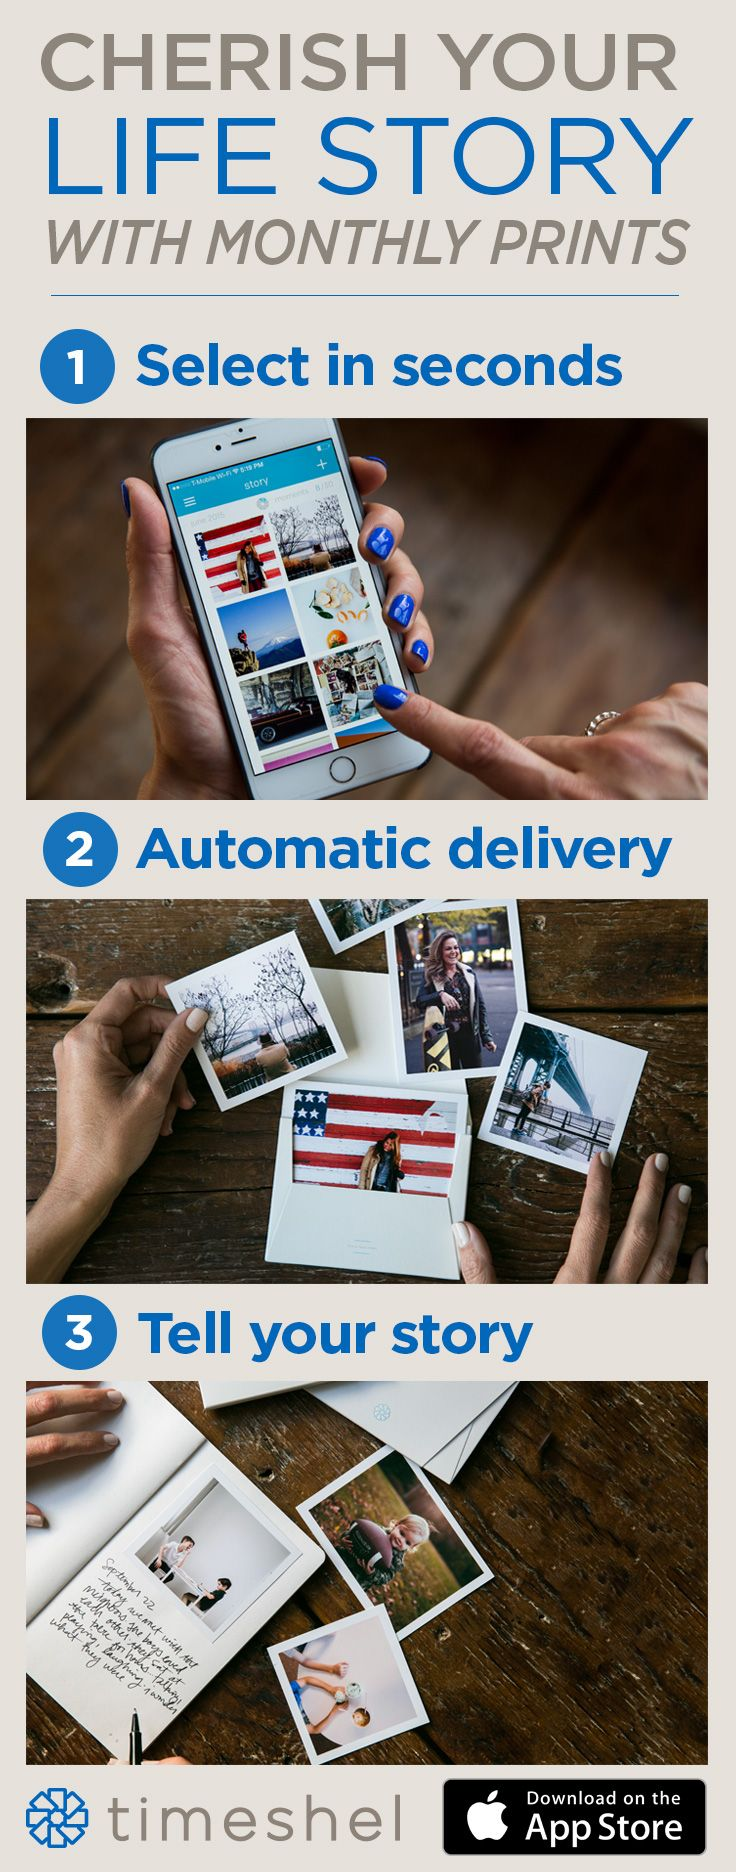 The perfect way to hold on to memories. Use the timeshel app to receive beautiful prints straight from your phone to your door, starting at $5.95 per month - shipping included!